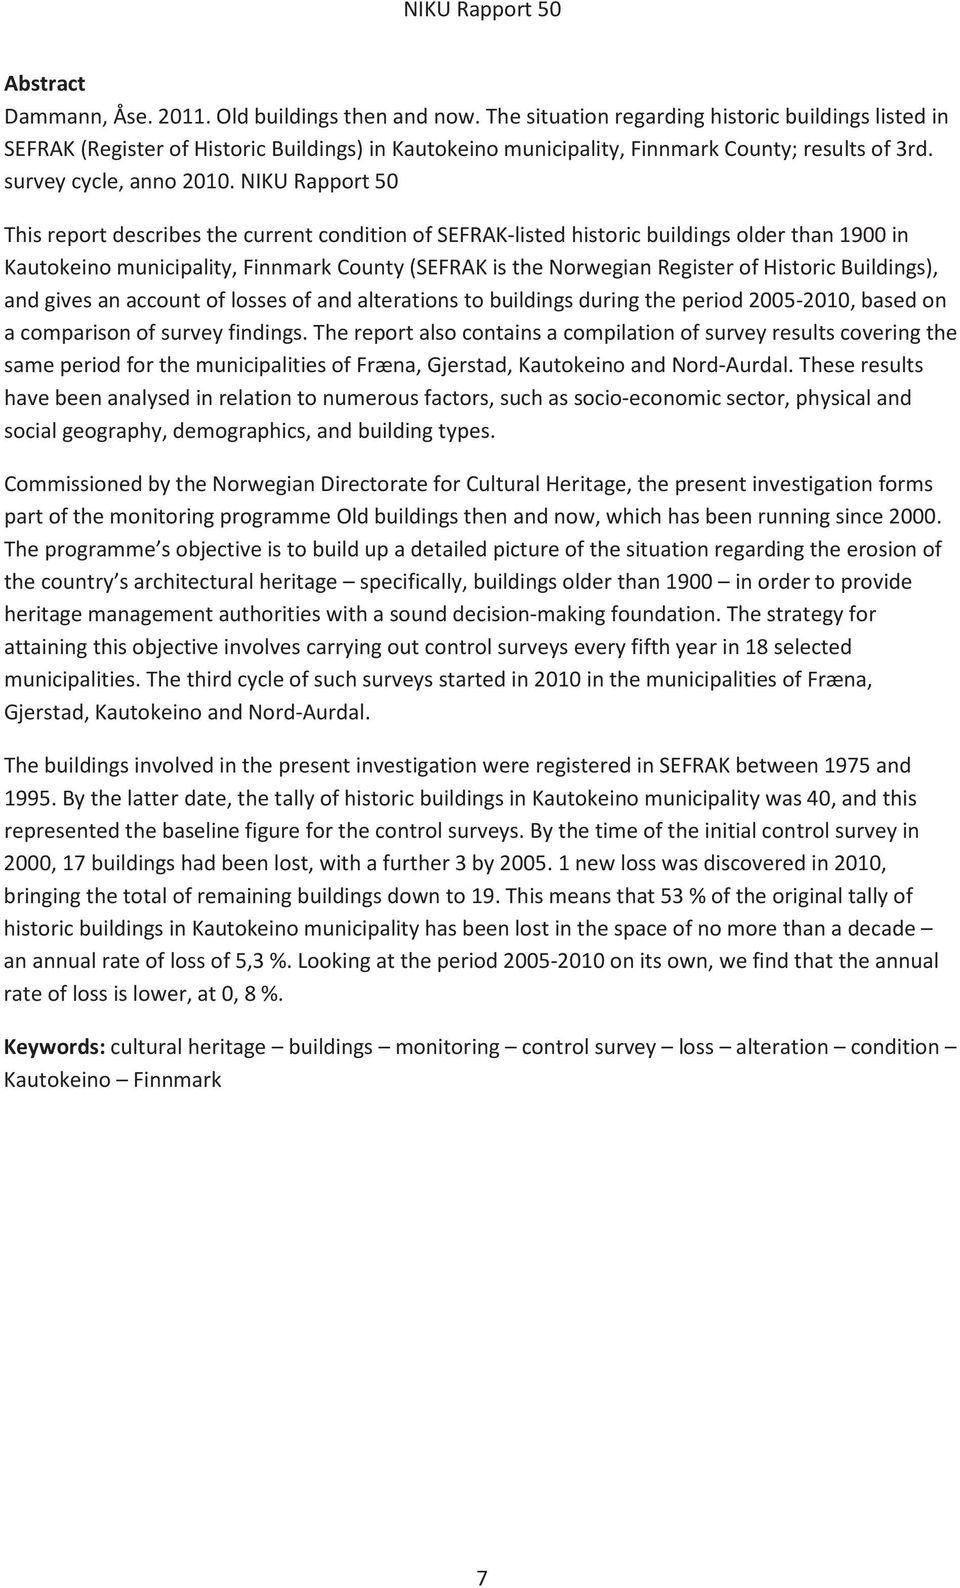 NIKU Rapport 50 This report describes the current condition of SEFRAK-listed historic buildings older than 1900 in Kautokeino municipality, Finnmark County (SEFRAK is the Norwegian Register of